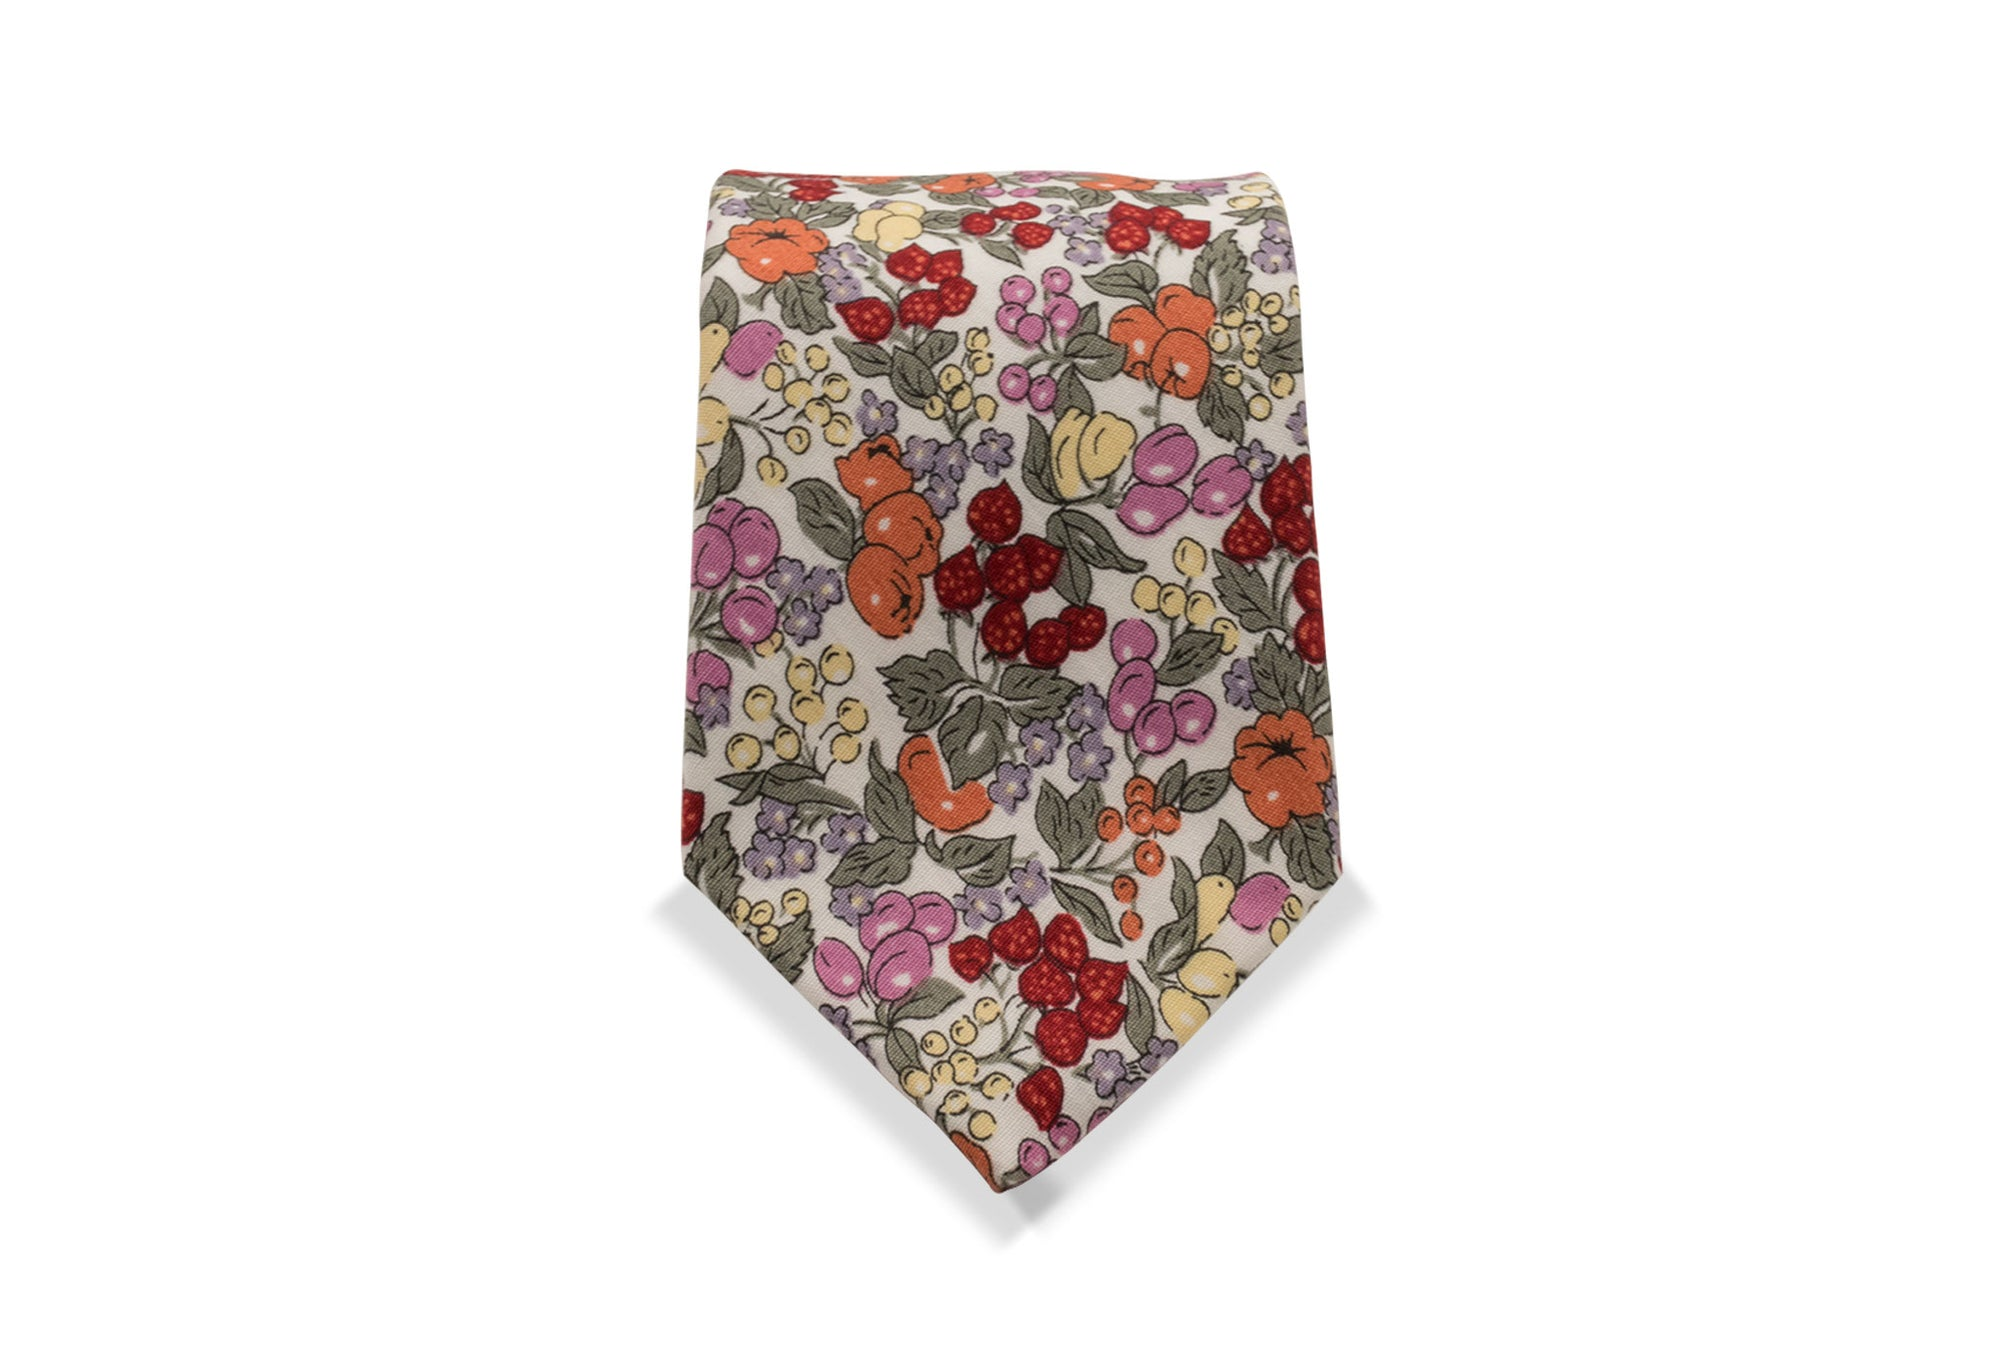 Tsurui Japanese Cotton Tie